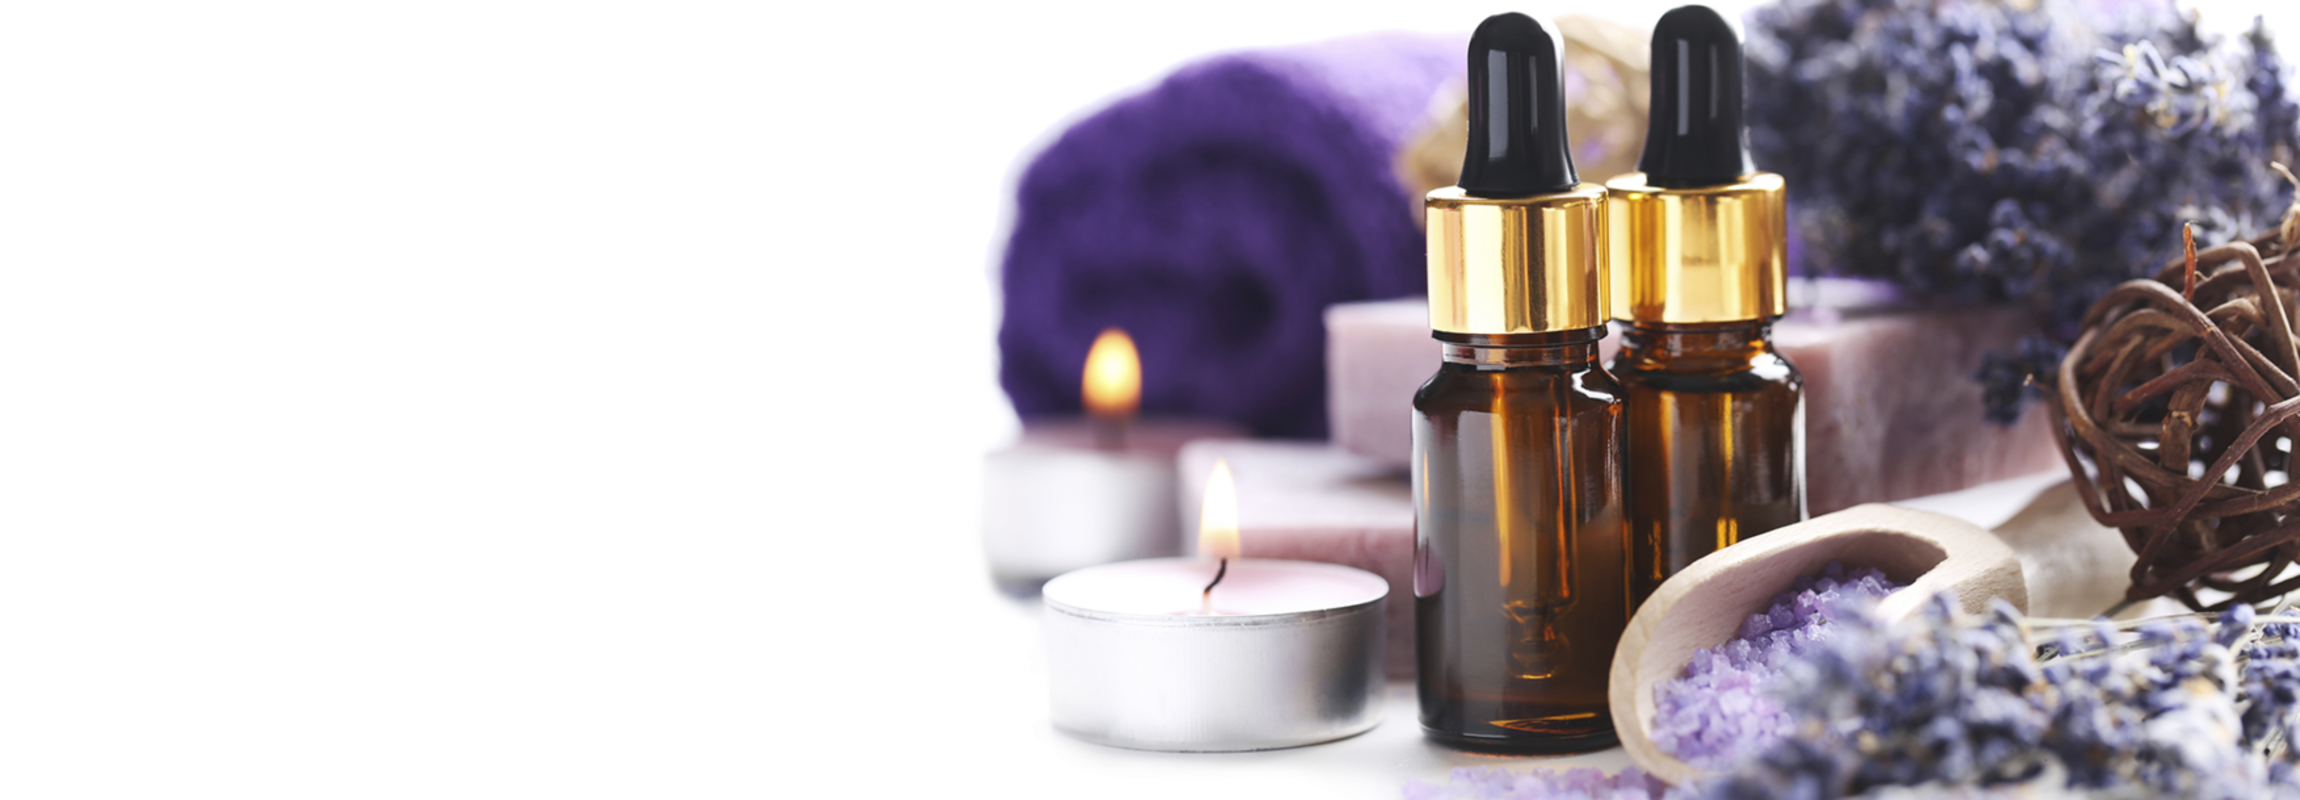 Aromatherapy , Essential Oils, Aromatherapy for Stress